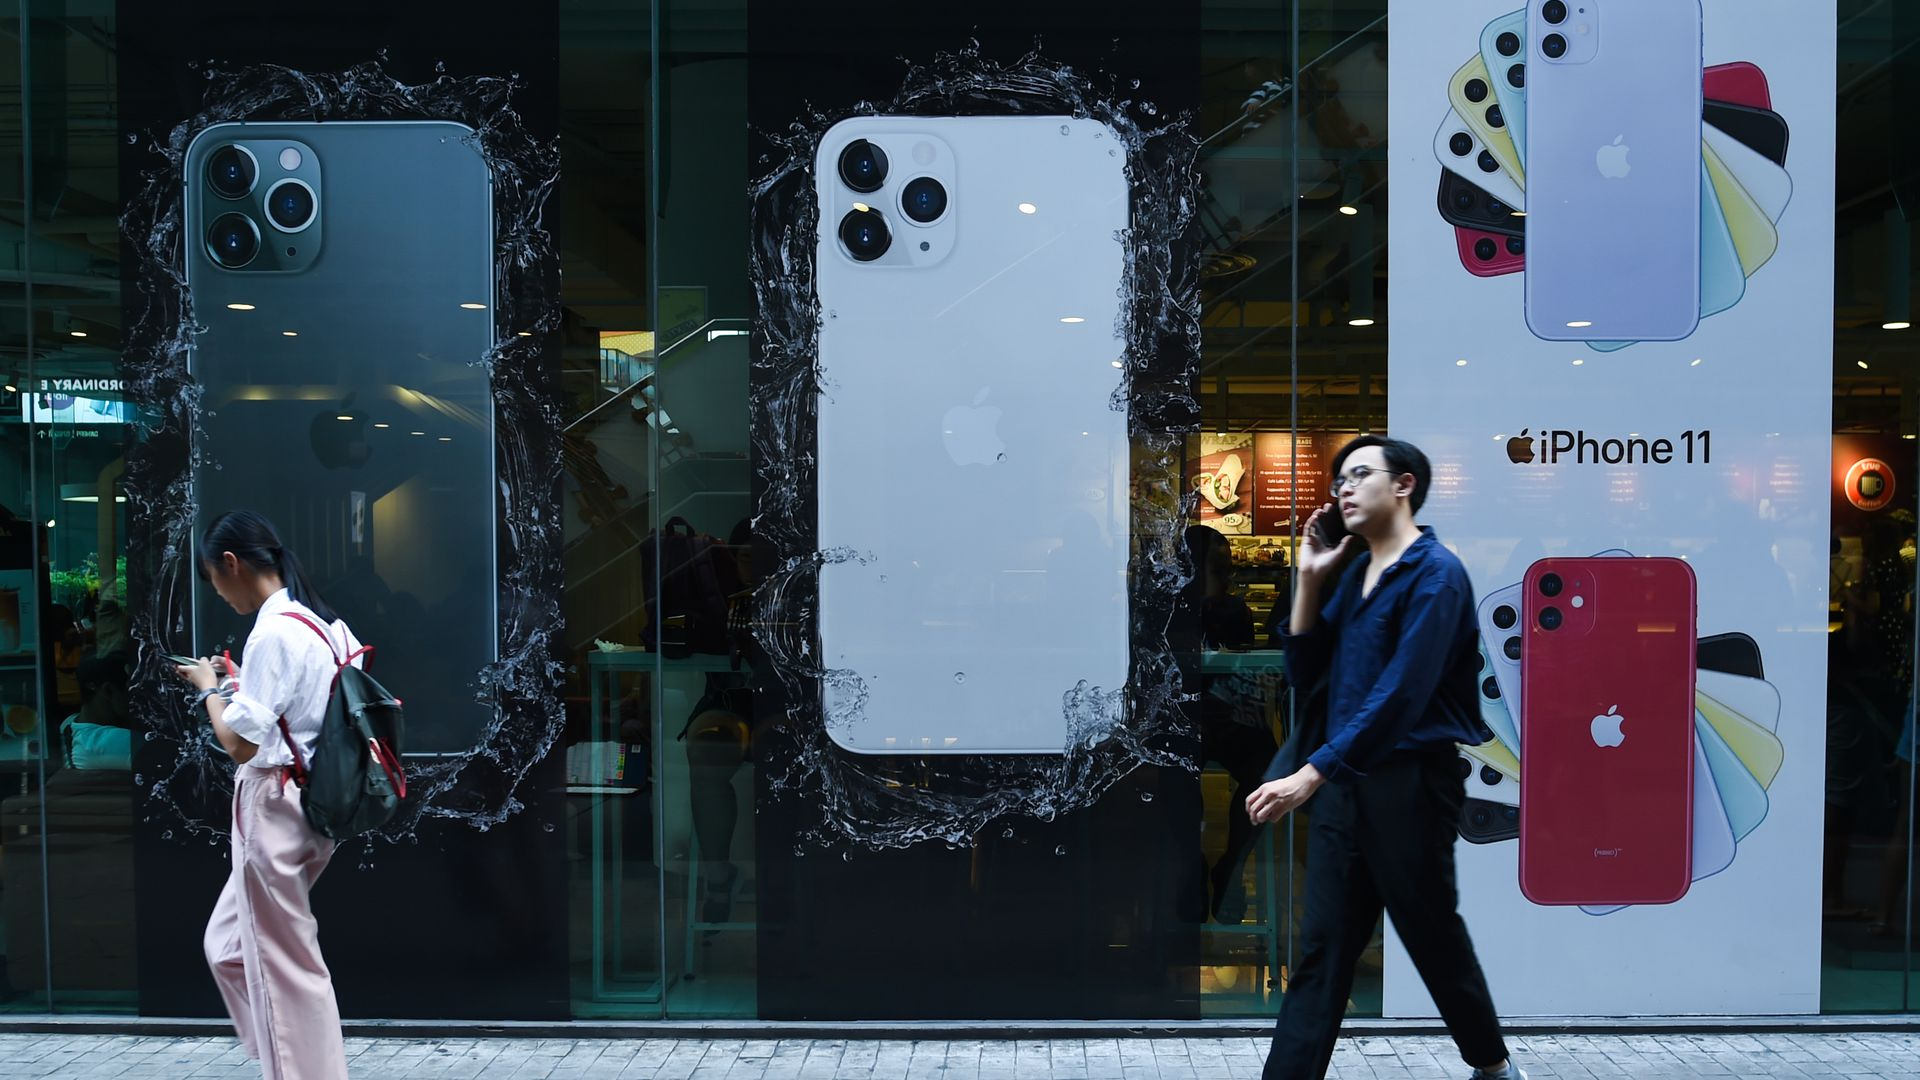 Ads for the iPhone 11 at a storefront